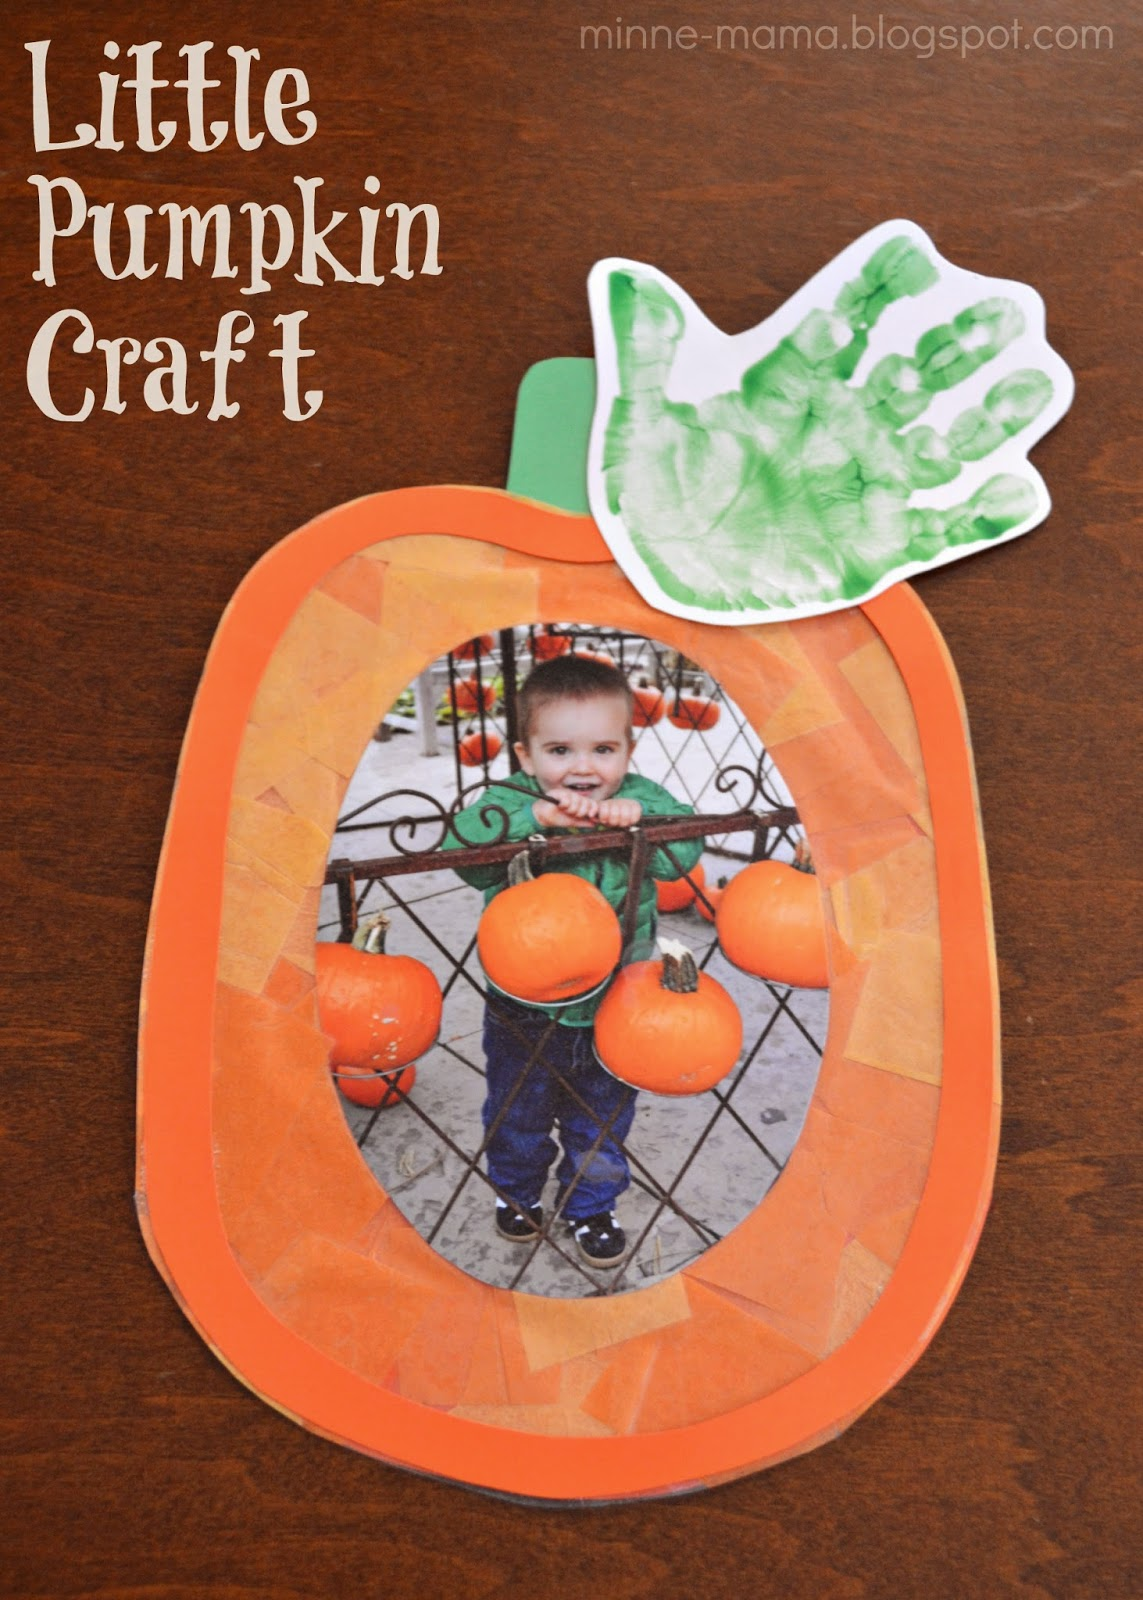 This is an image of Trust Pumpkin Crafts for Toddlers